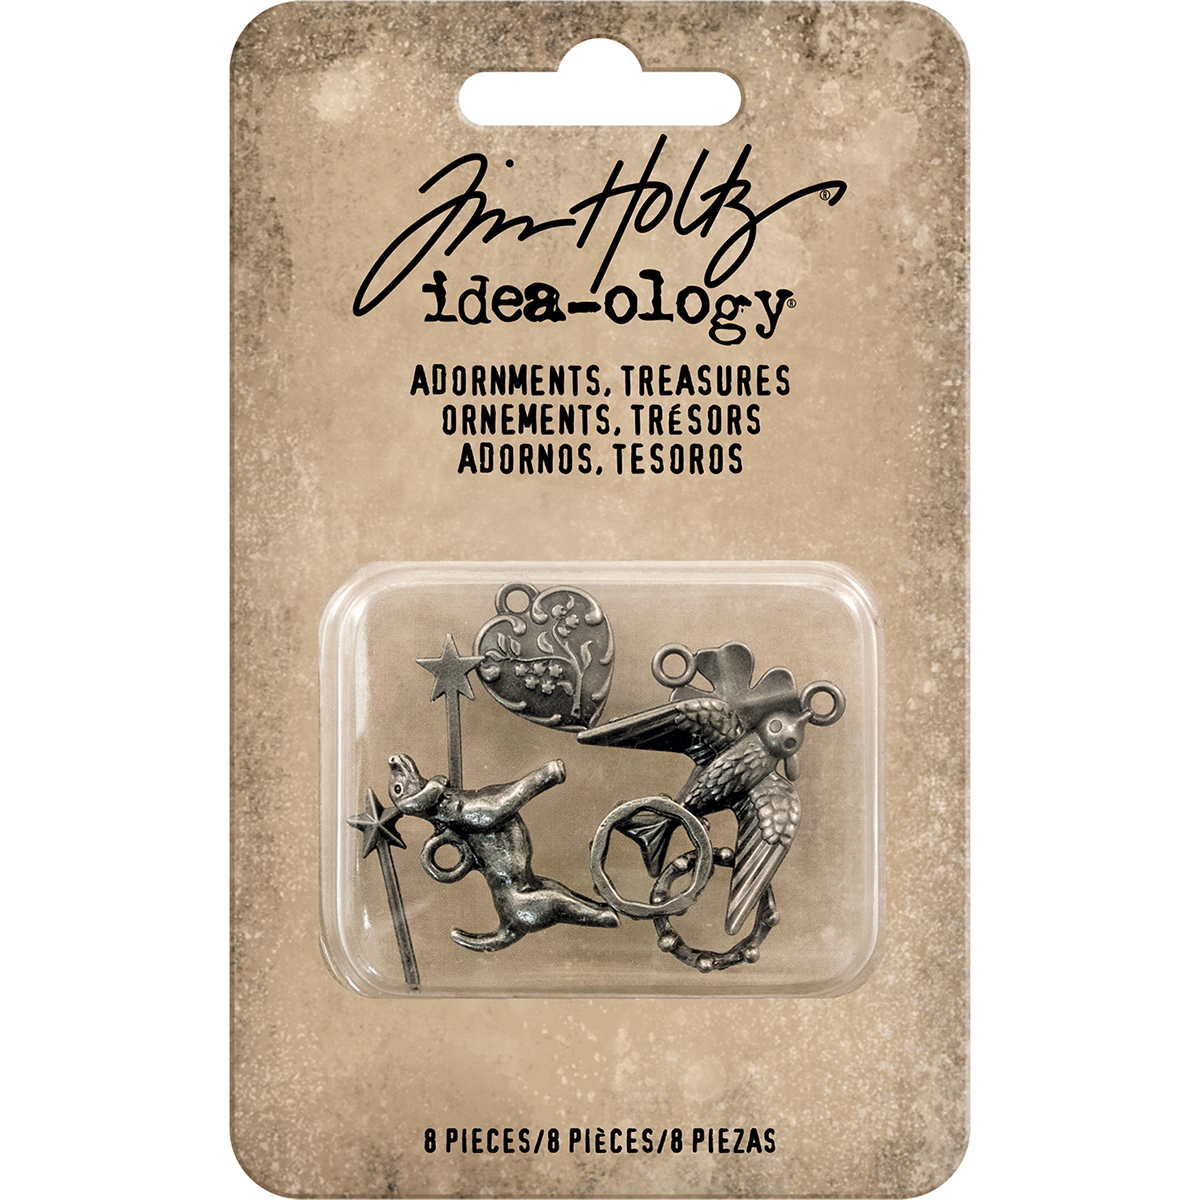 Idea-Ology Metal Adornments 8/Pkg-Treasures Charms & Accents .375 To 875